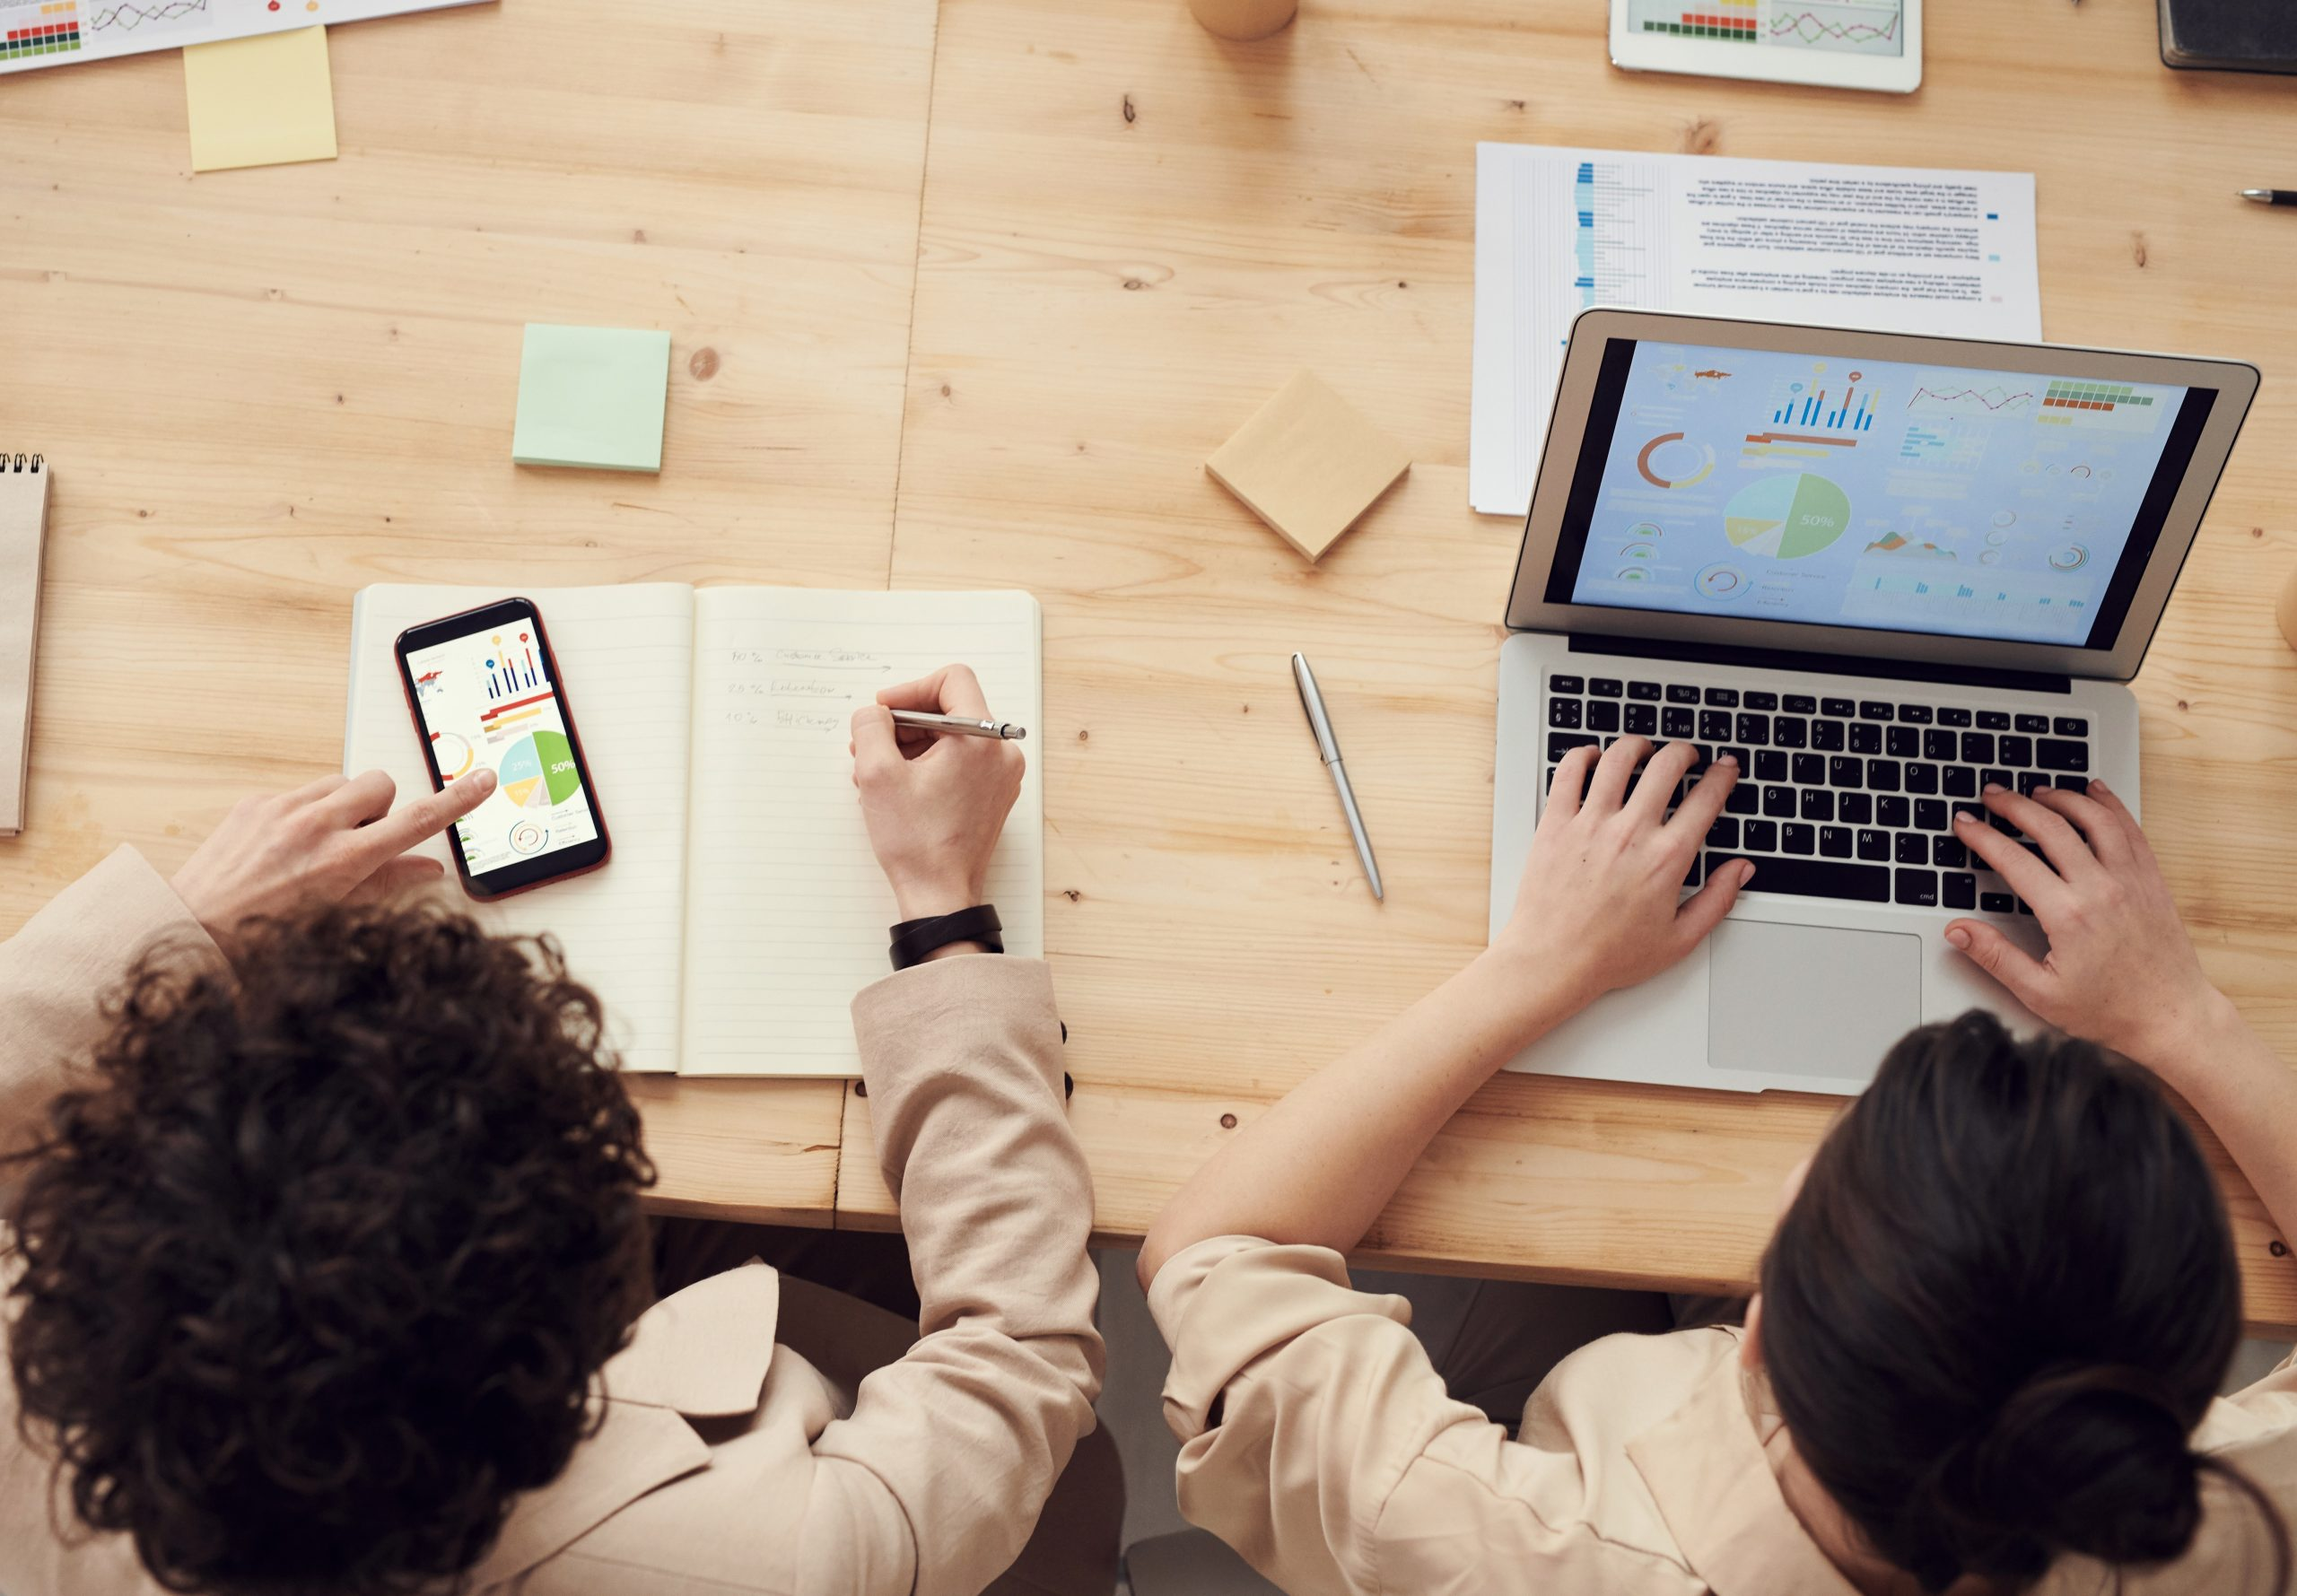 Two people sat a desk automating tasks with their bespoke business work flow app